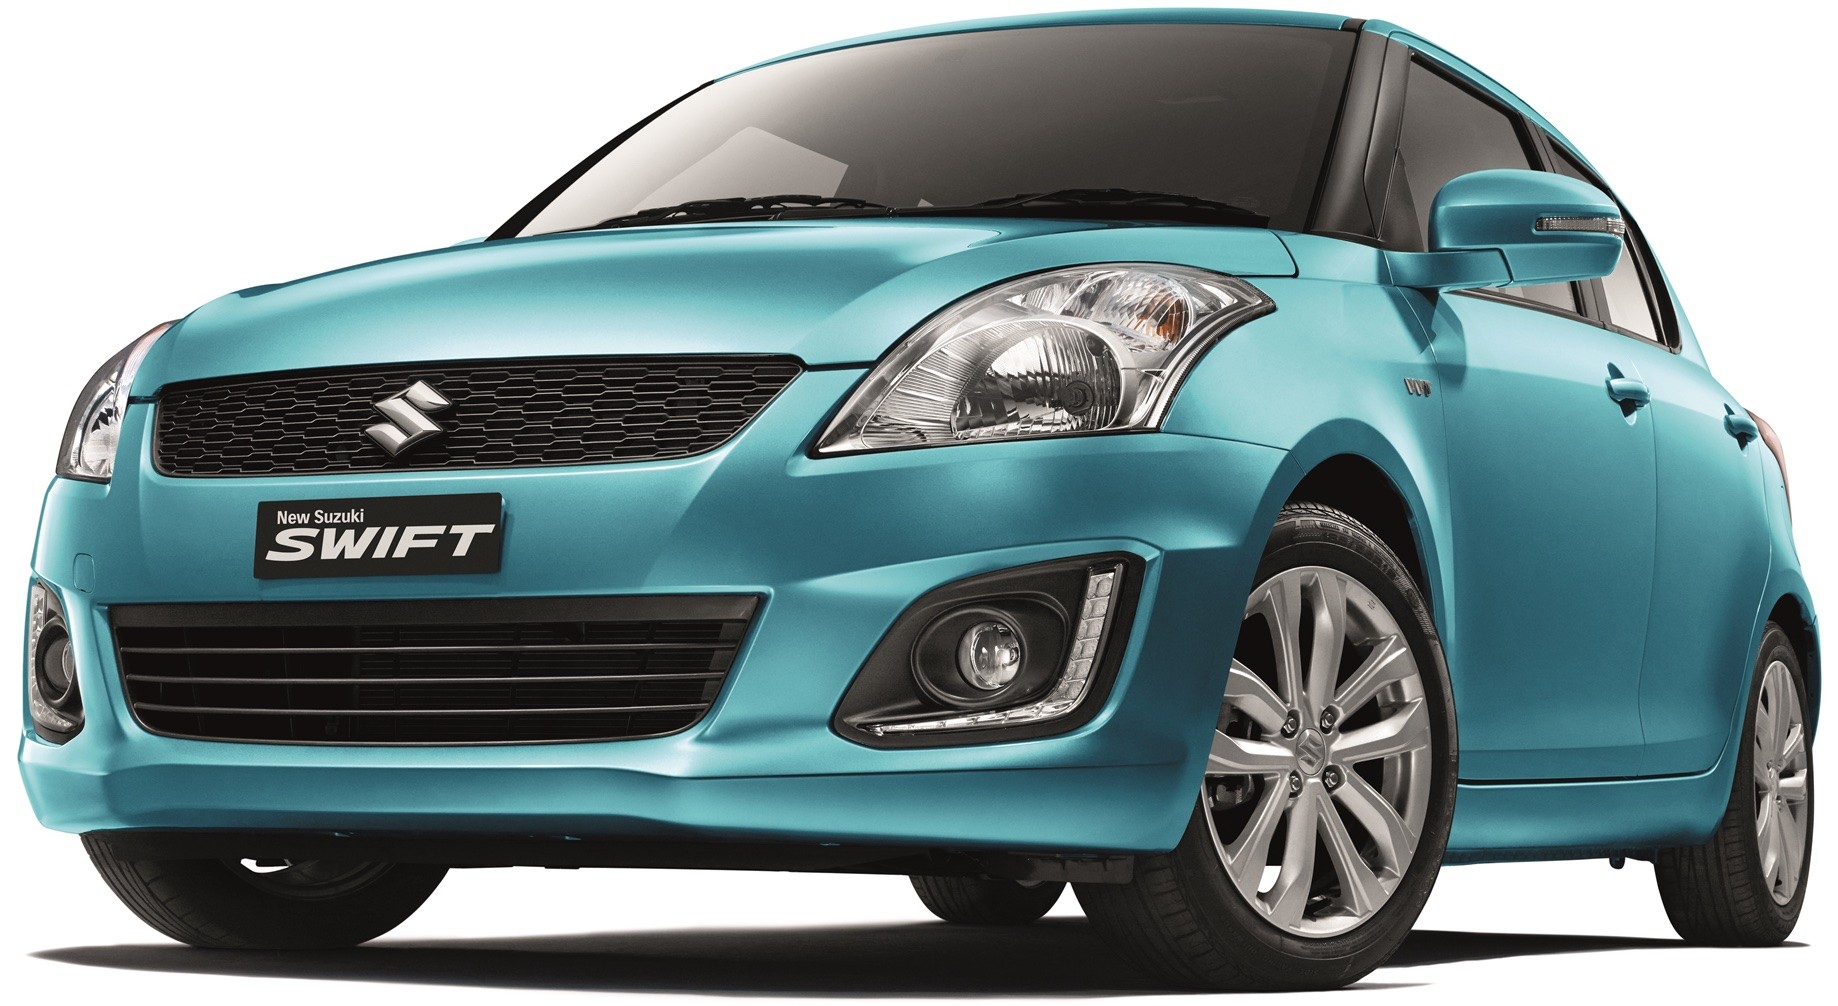 suzuki swift facelift specs est pricing out rm59k 73k. Black Bedroom Furniture Sets. Home Design Ideas